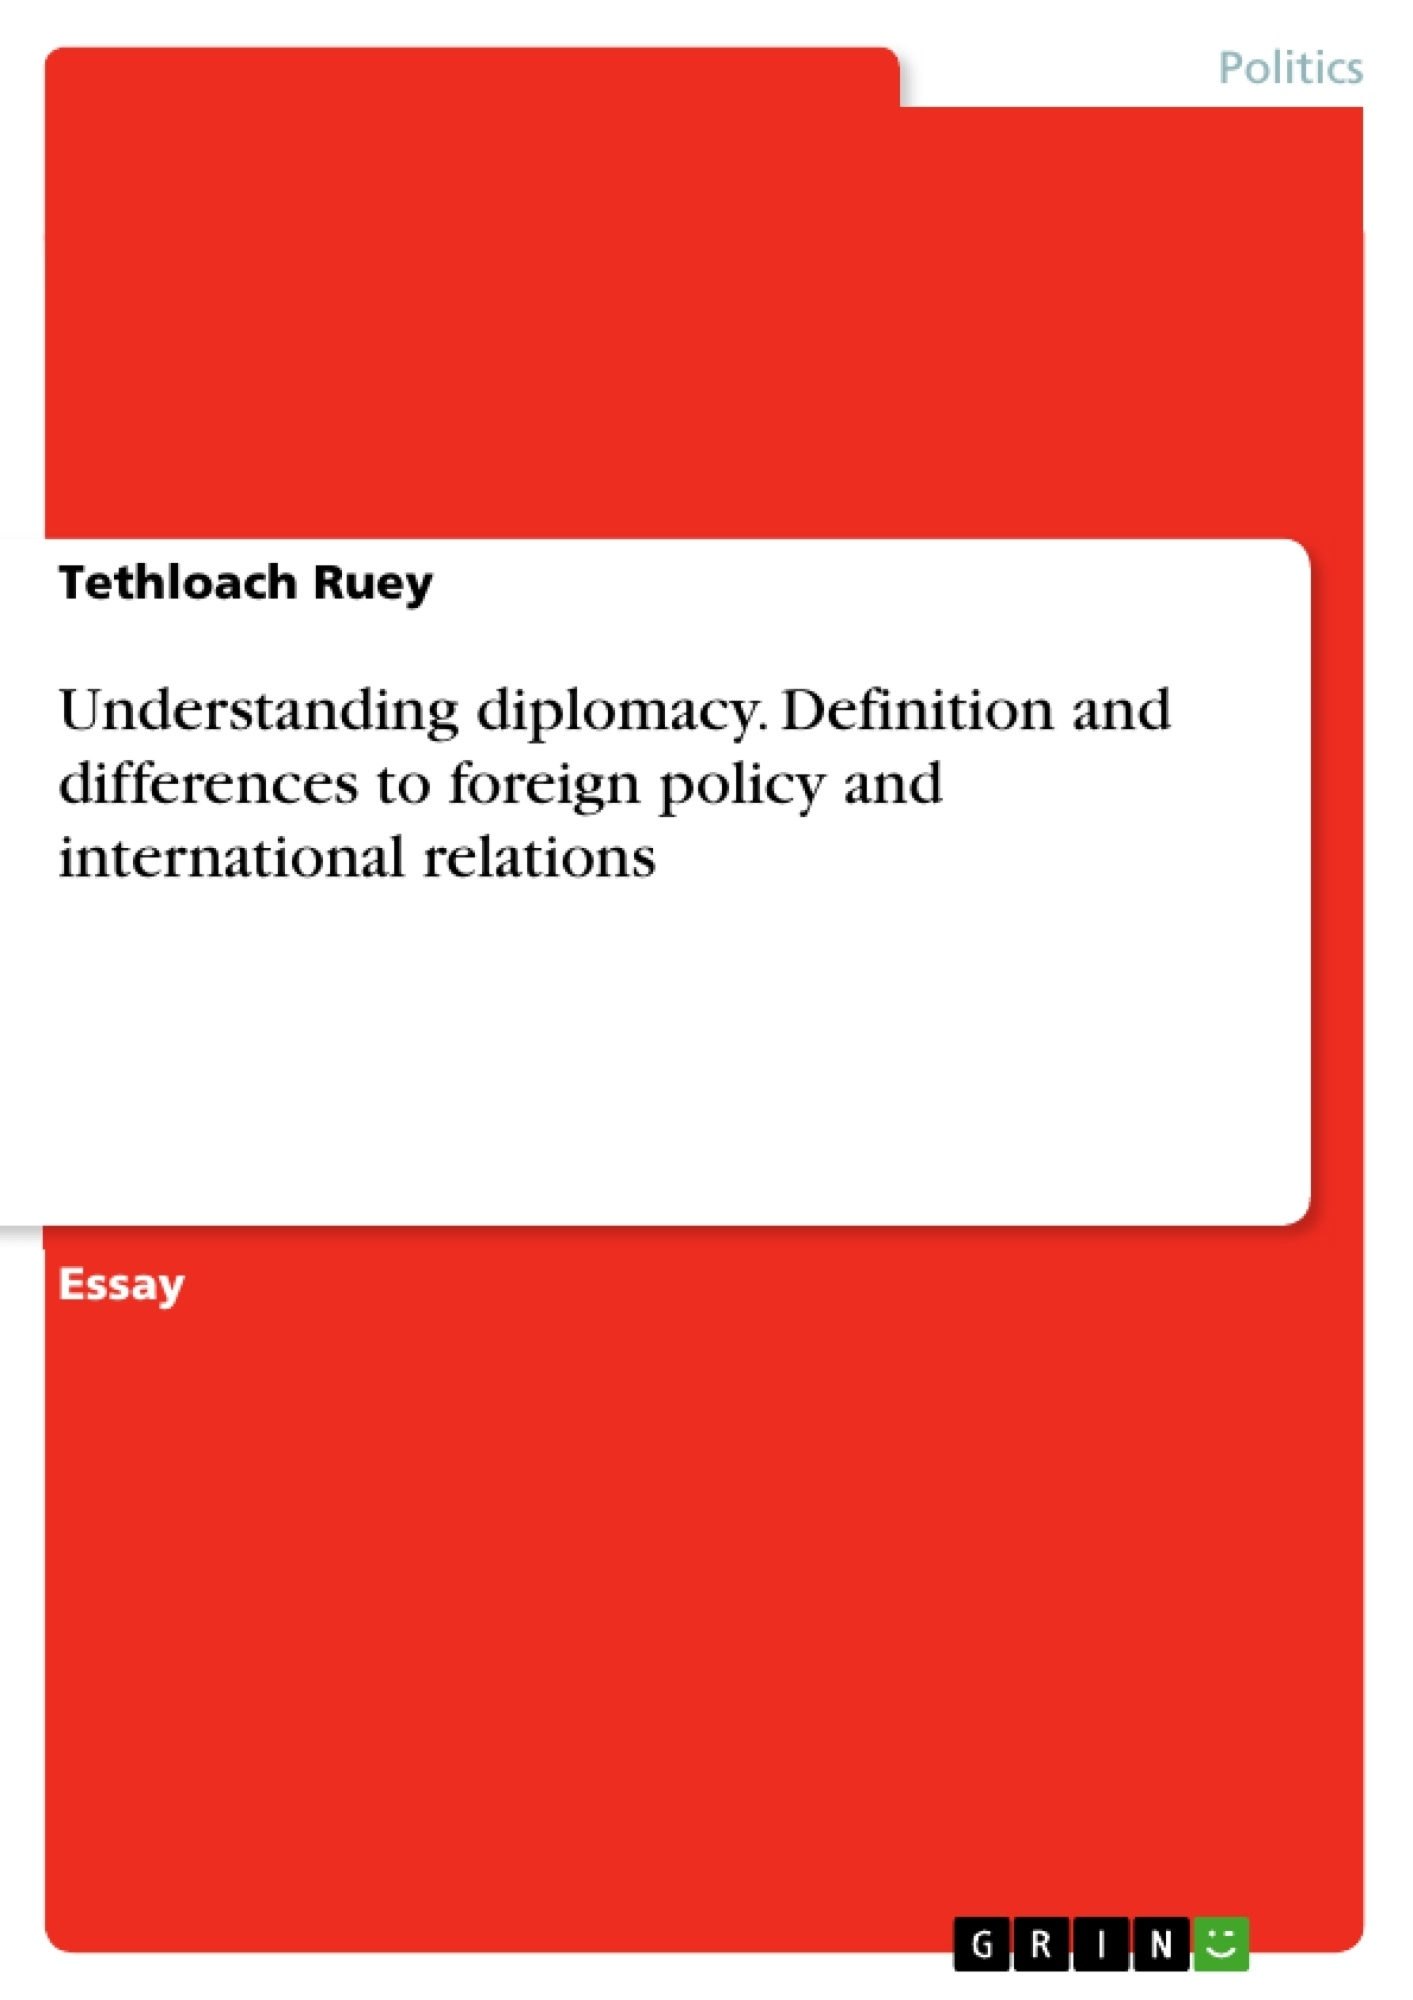 GRIN - Understanding diplomacy  Definition and differences to foreign  policy and international relations